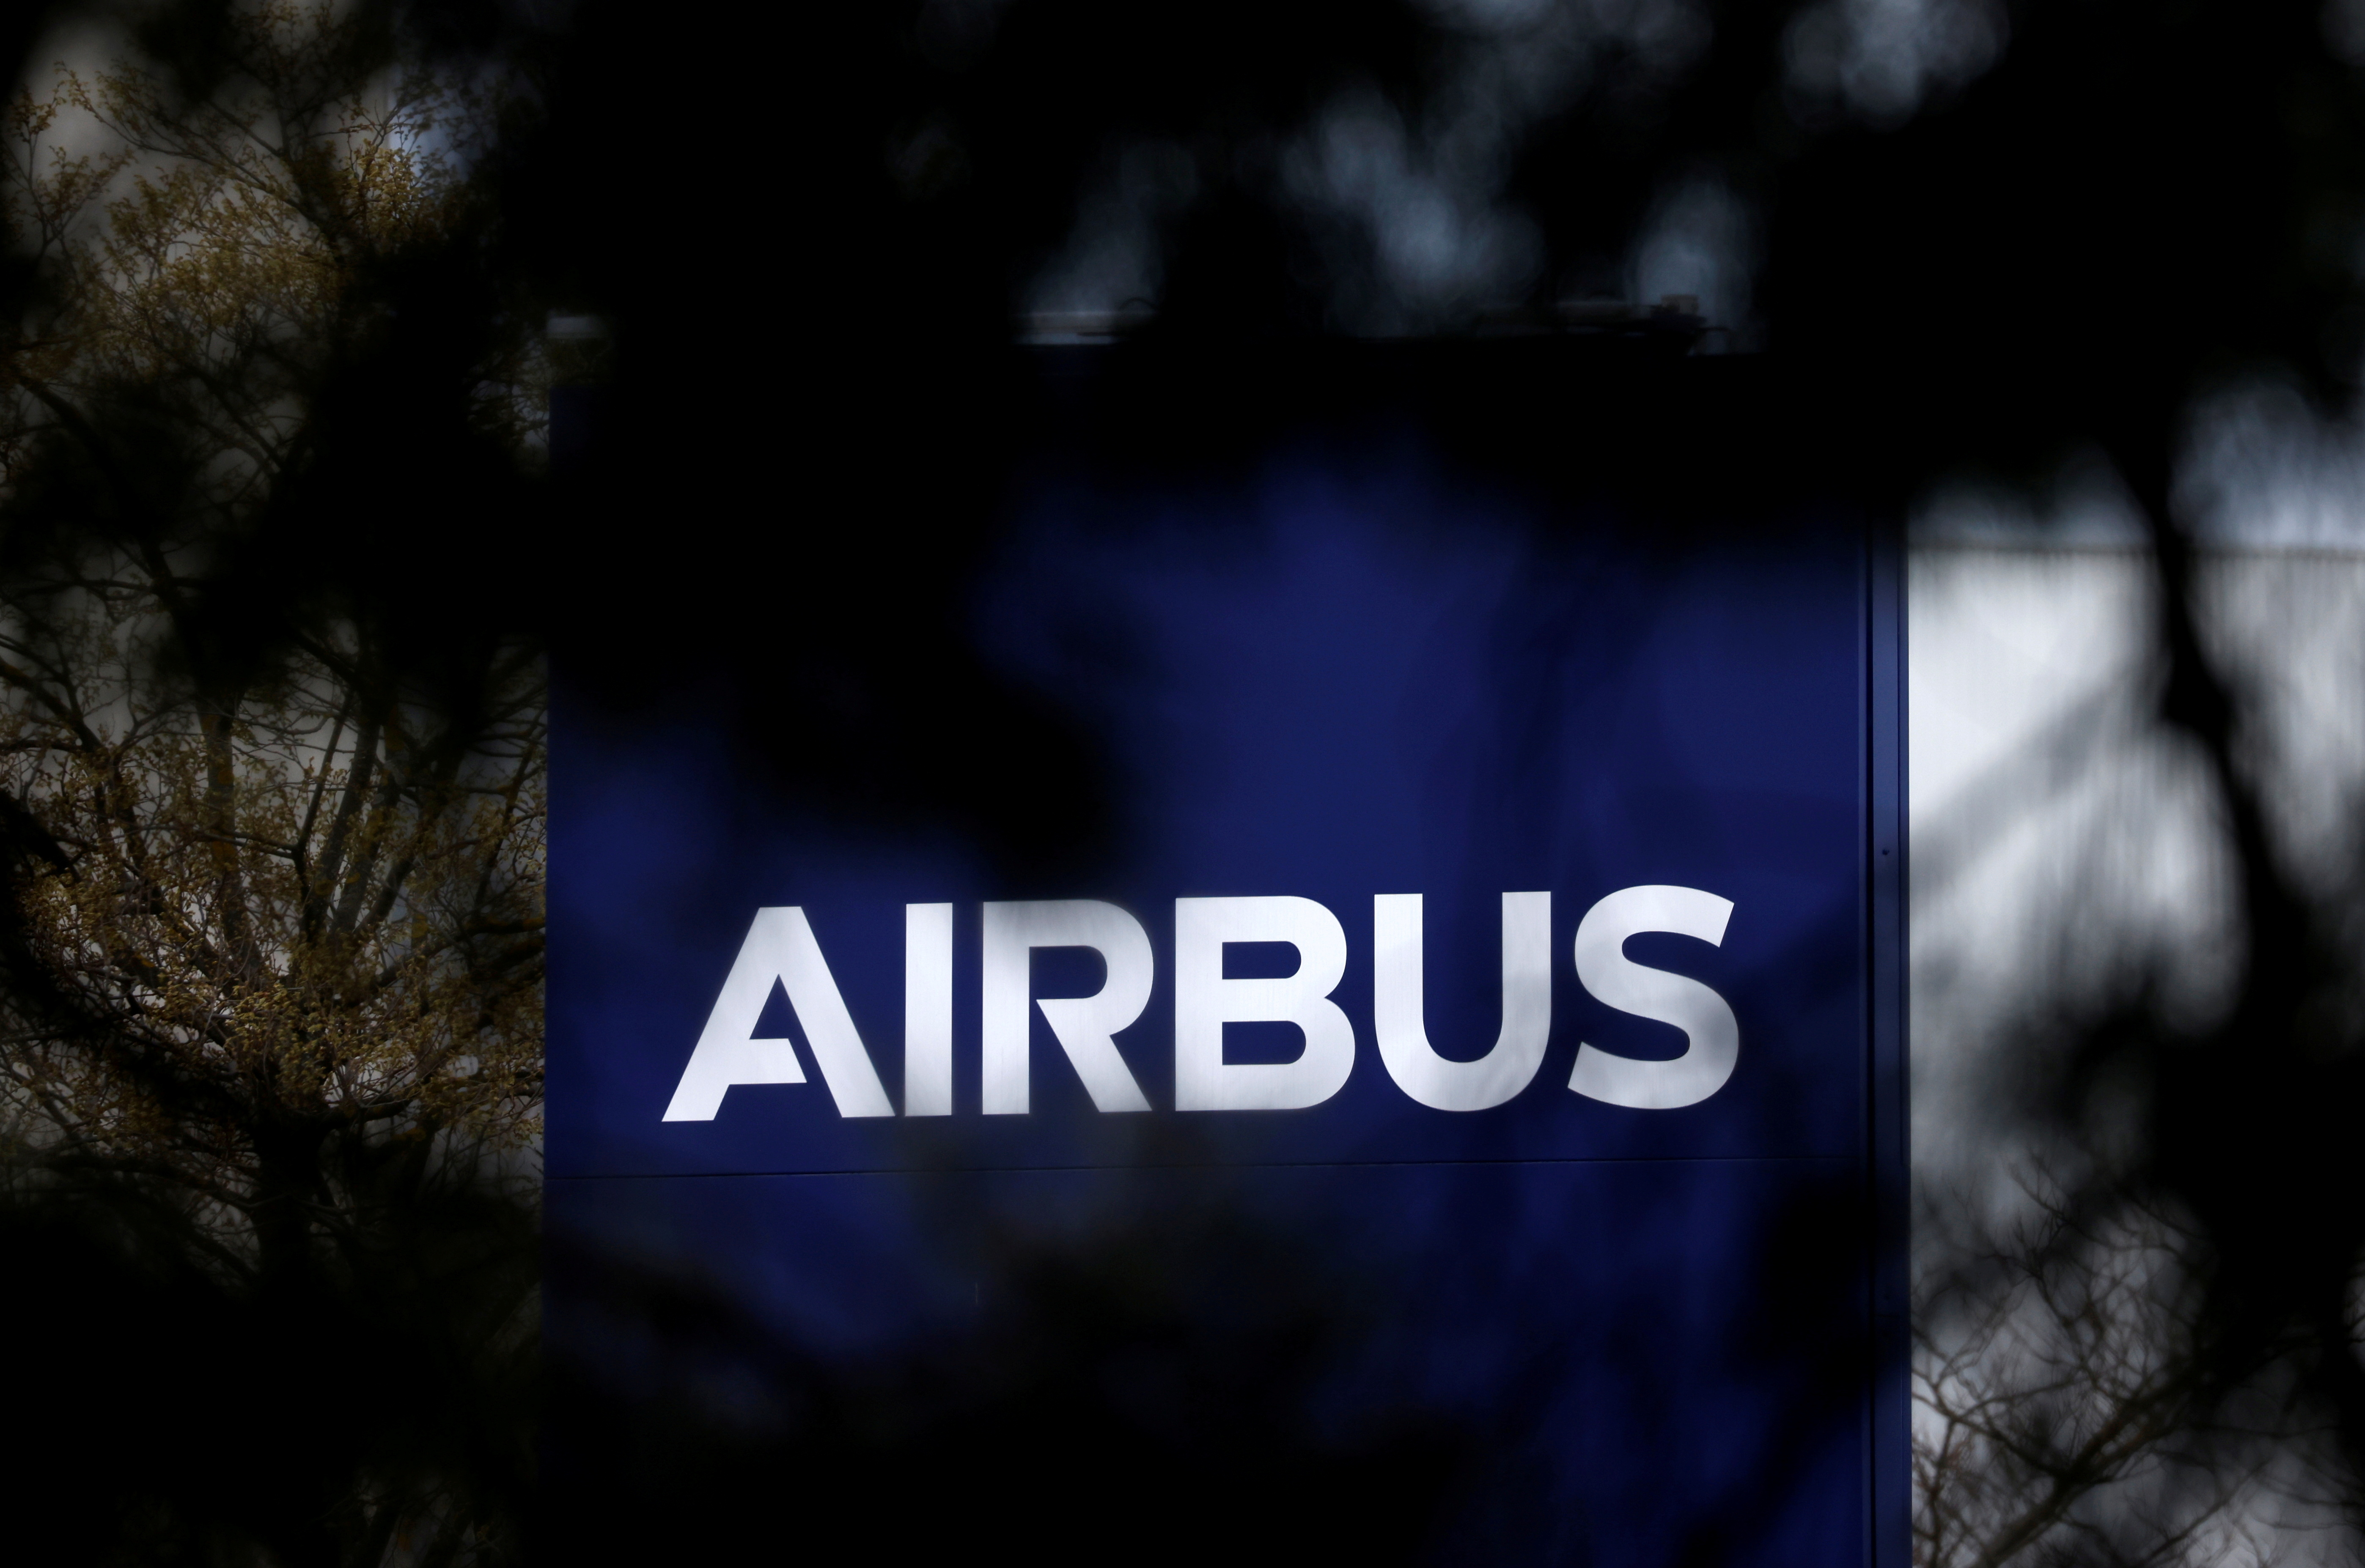 The logo of Airbus is seen at the entrance of a building in Toulouse, France, March 11, 2021. REUTERS/Stephane Mahe/File Photo